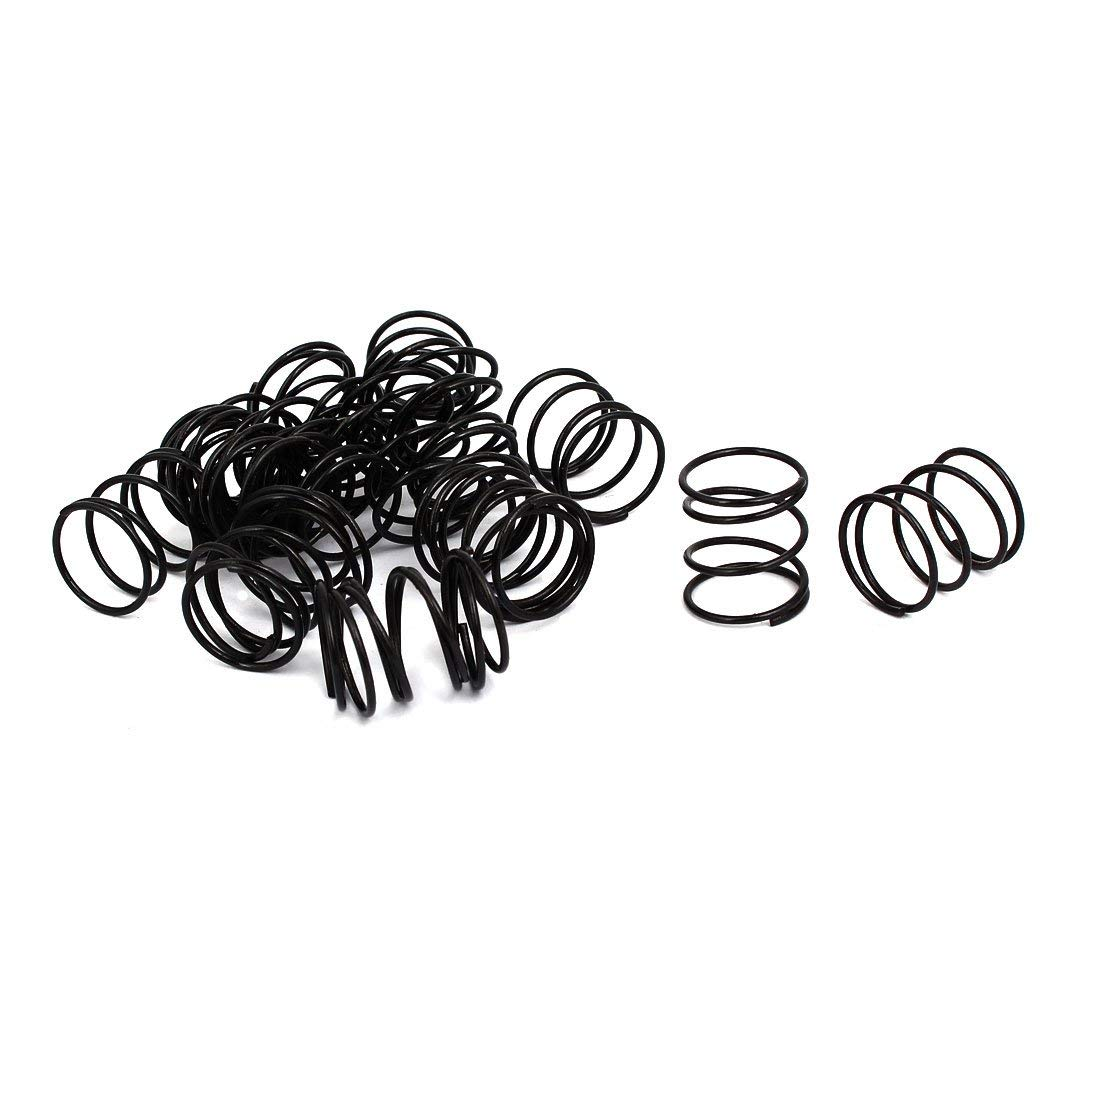 1.2mm Fil Dia 18mm Dia Ext 15mm Long Compression Ressort Noir 20pc